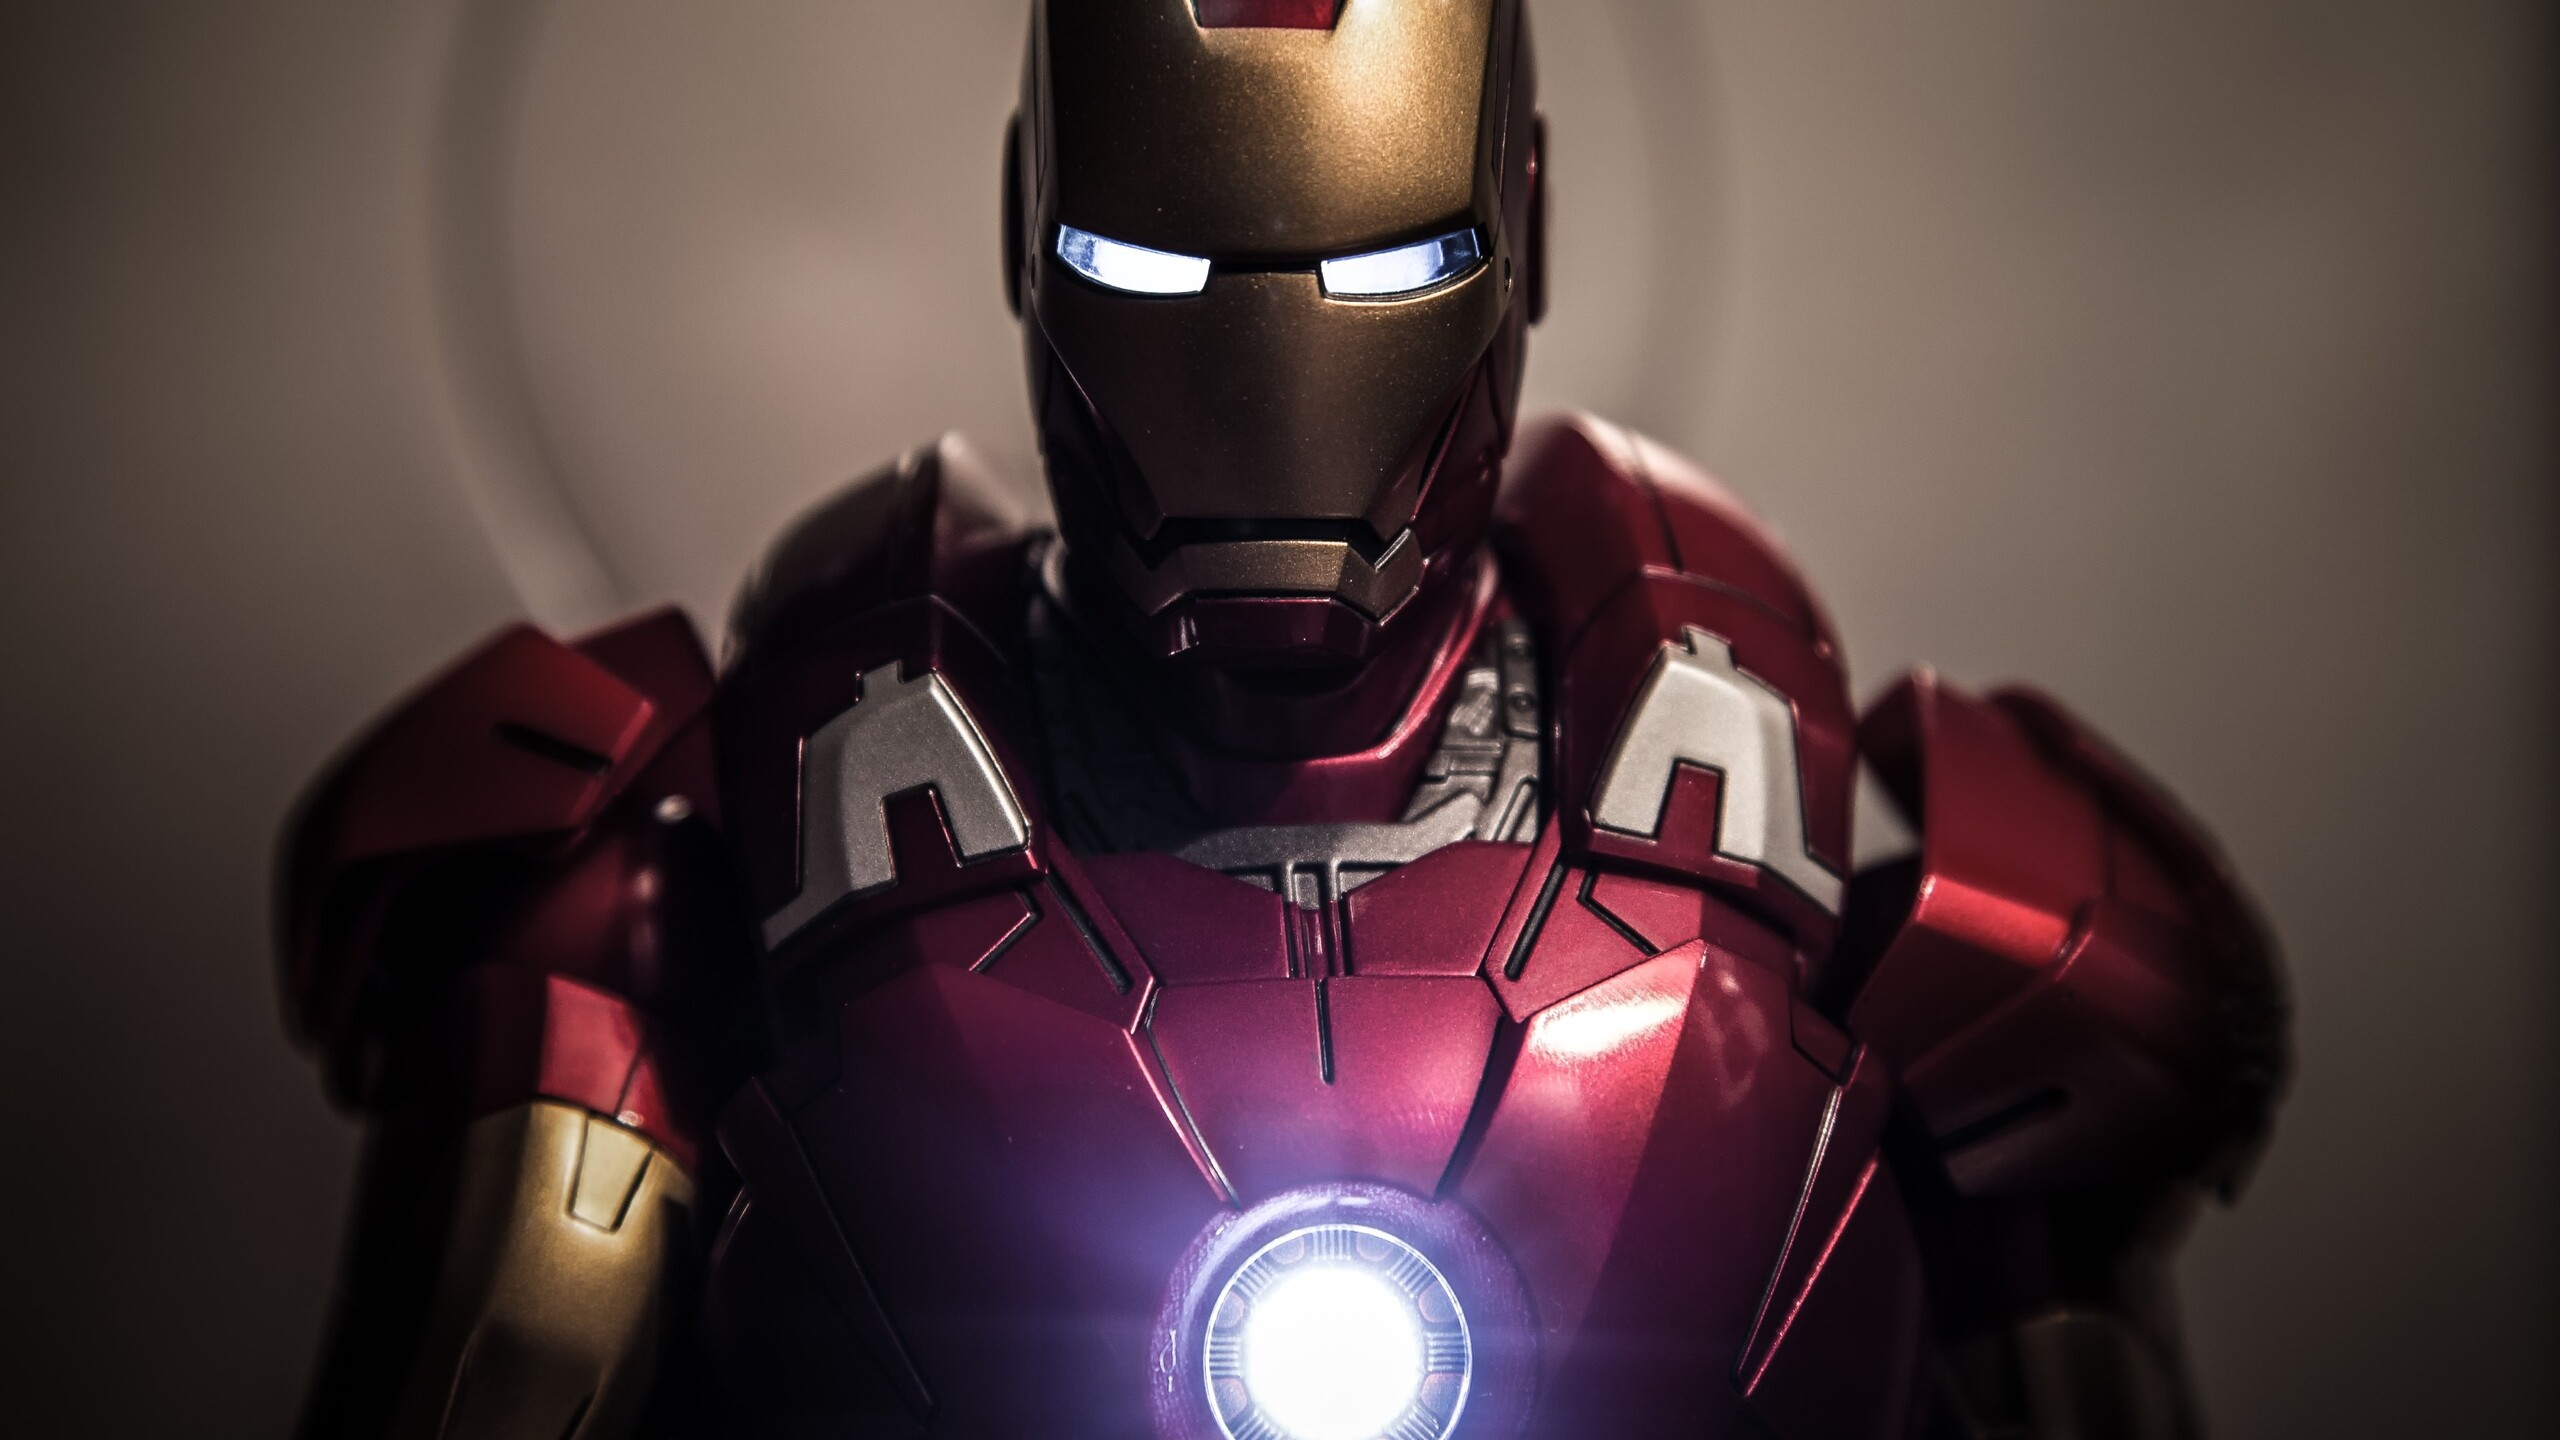 2560x1440 iron man suit 1440p resolution hd 4k wallpapers, images